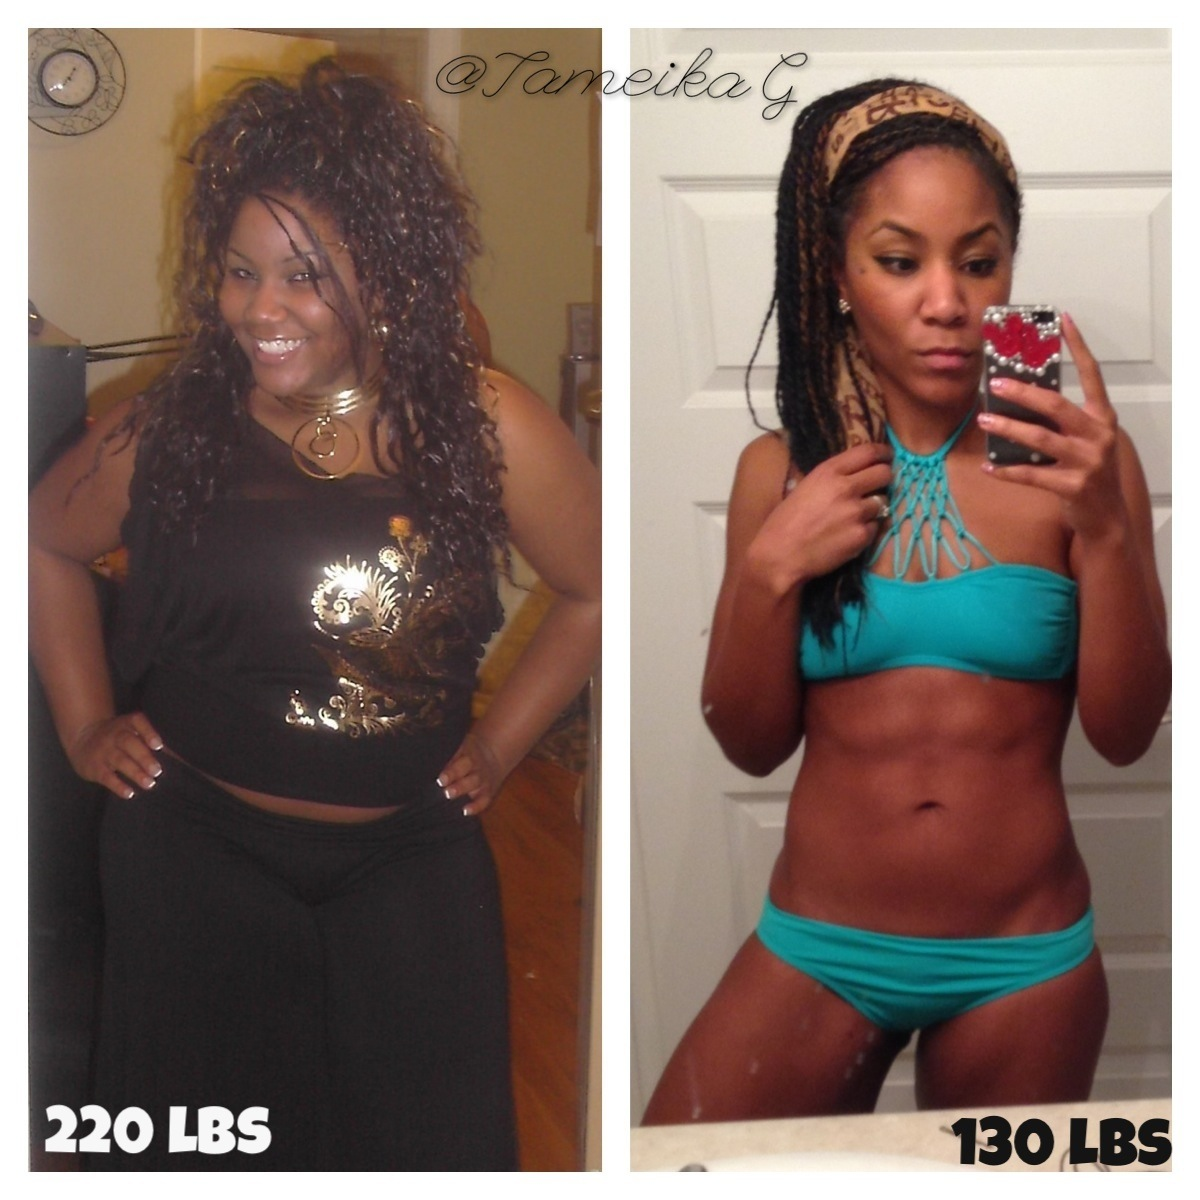 Tameika Gentles TameikaG #weightloss #beforeandafter